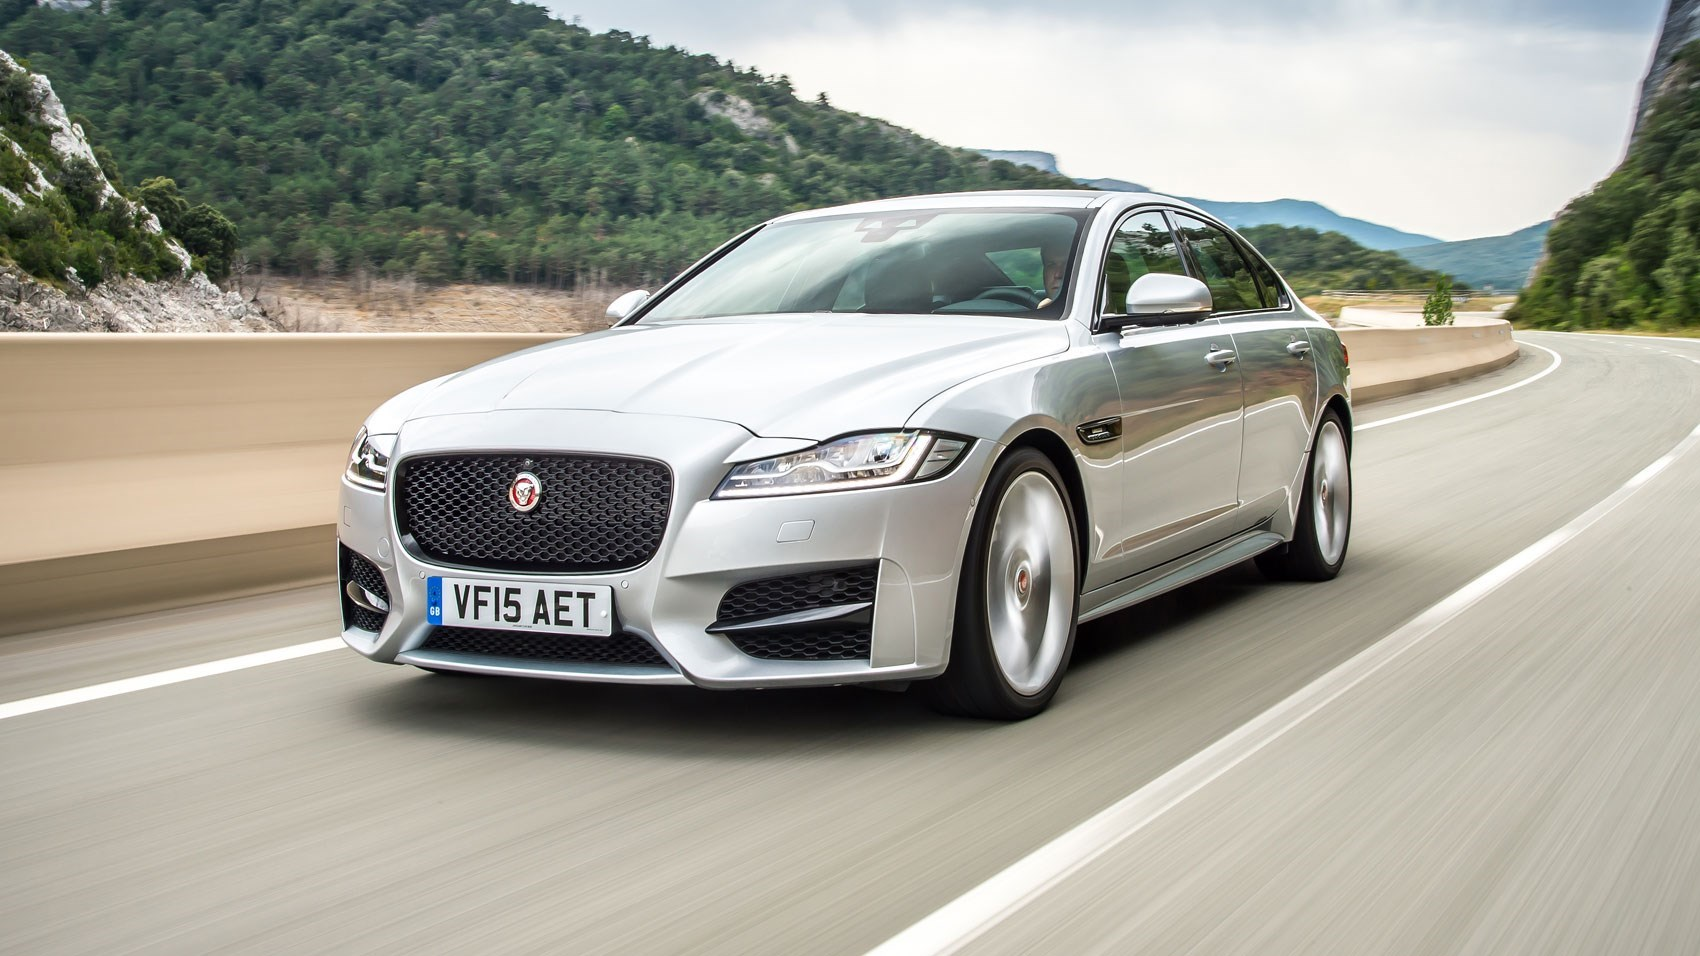 jaguar xf 2 0d r sport 4d 163ps manual review 2017 car magazine rh carmagazine co uk jaguar xf manual pdf jaguar xf manual boot release